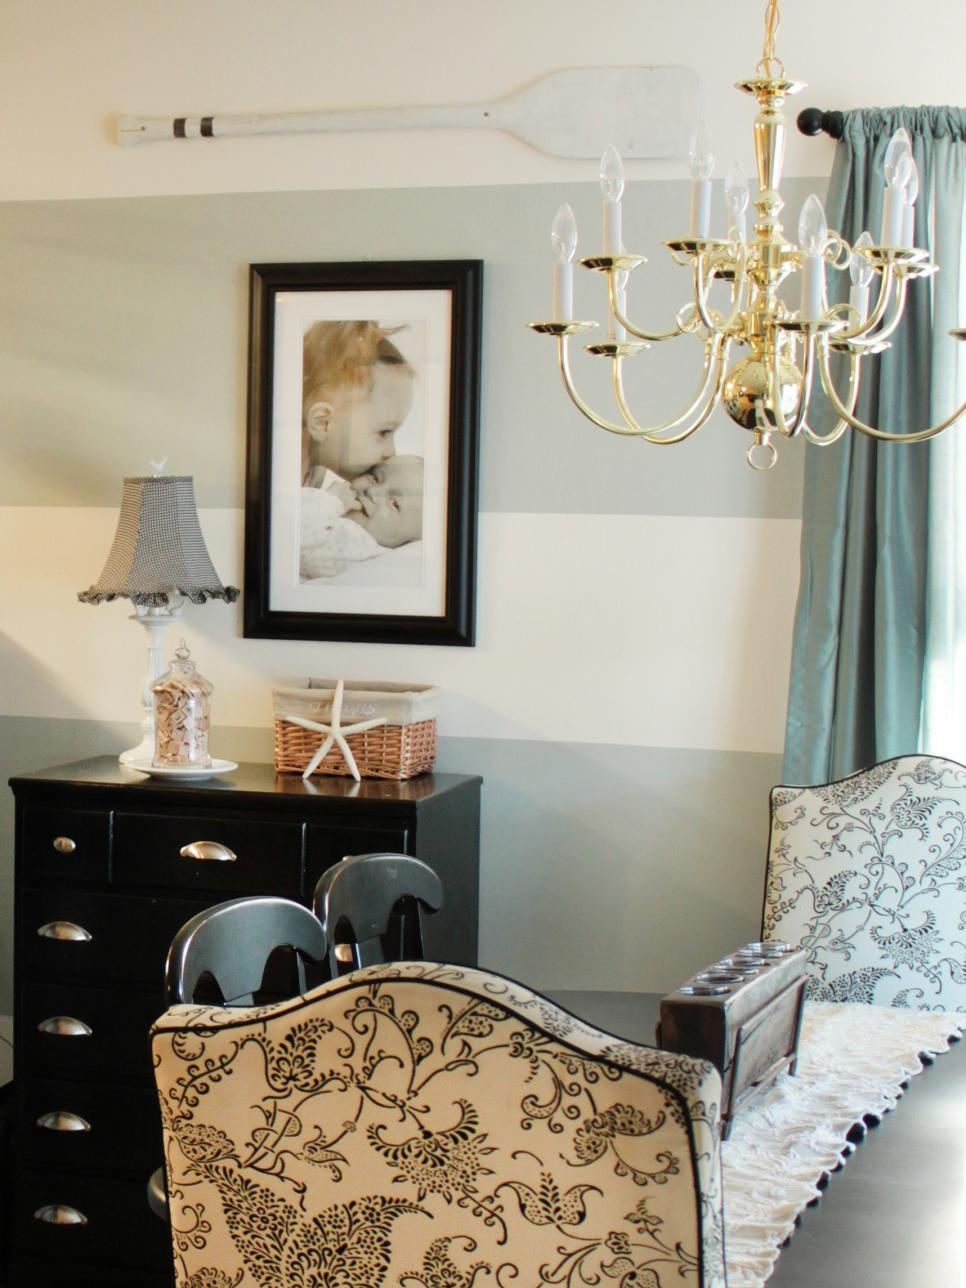 15 Dining Room Decorating Ideas | Hgtv With Regard To Wall Art For Dining Room (View 14 of 20)